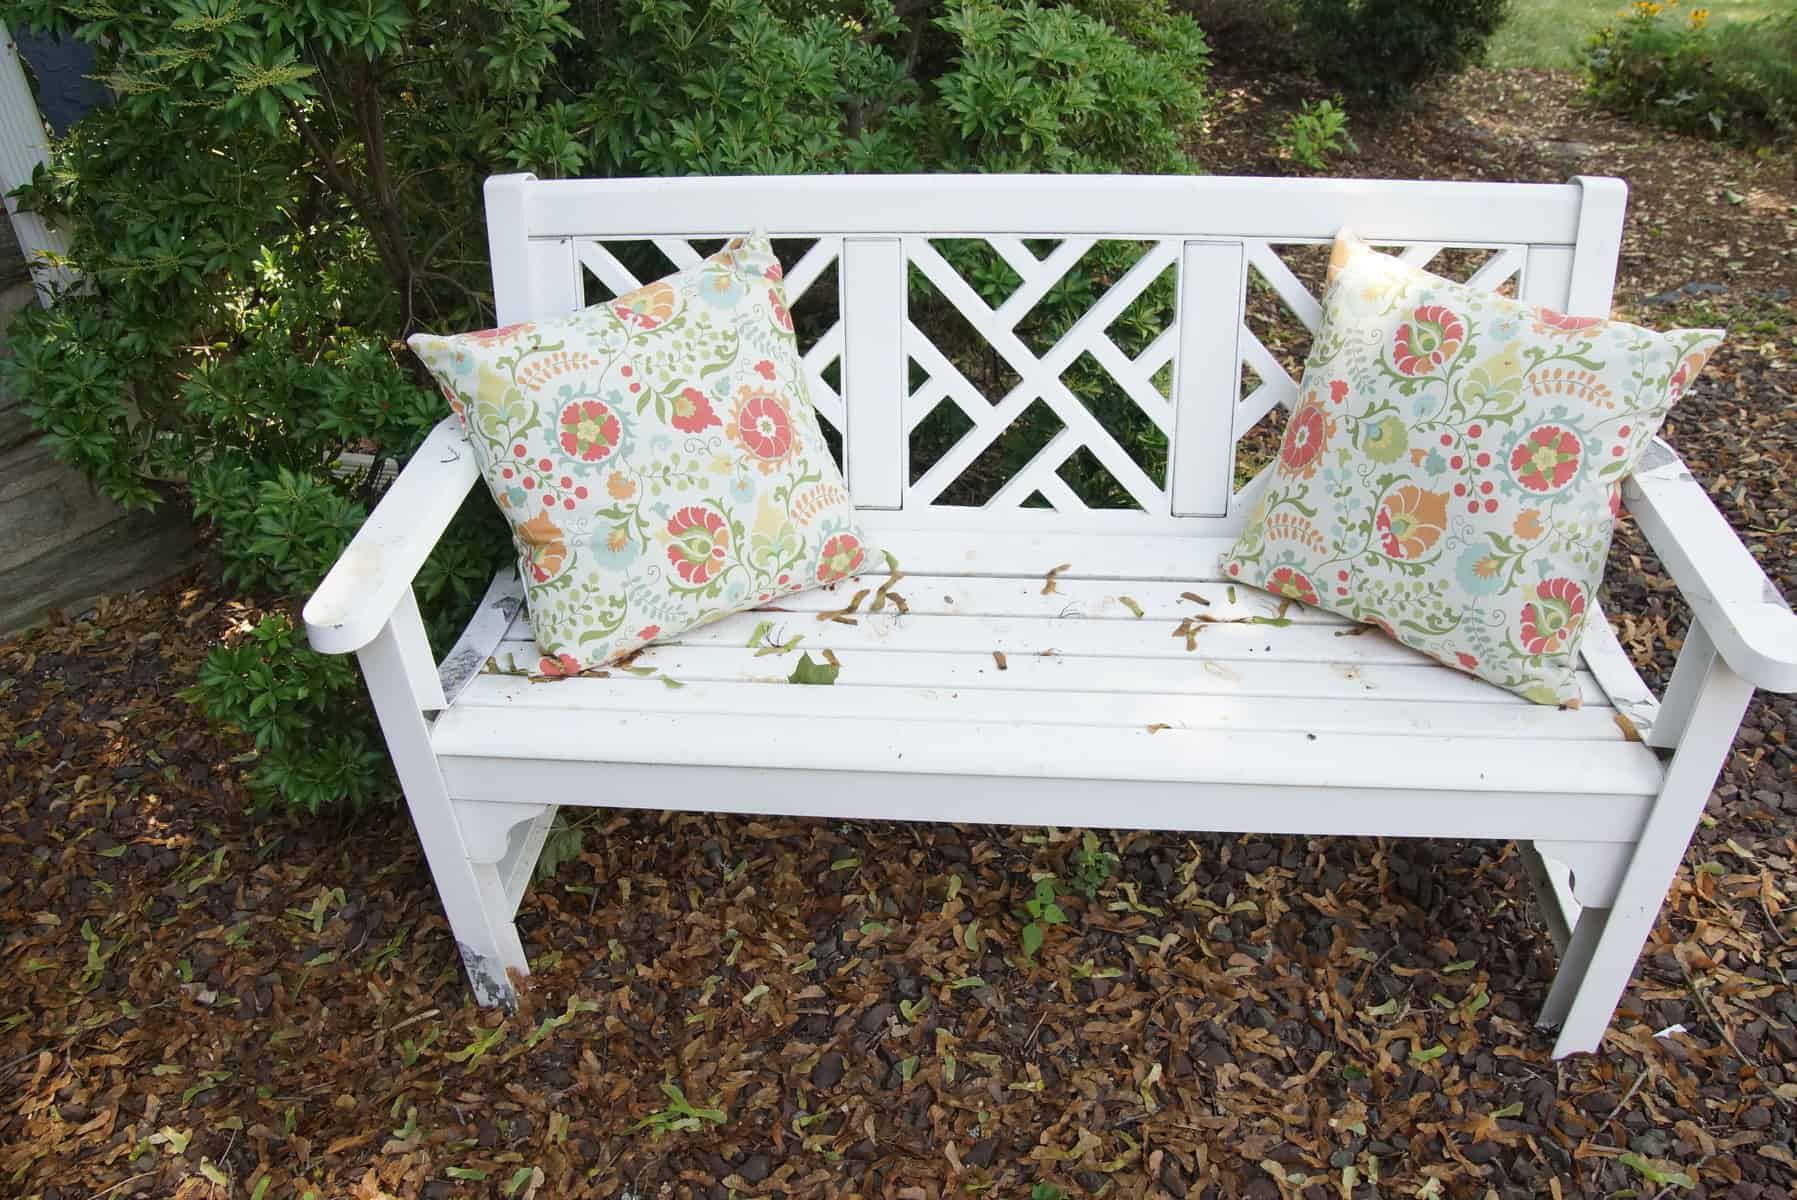 Charmant BEFORE White Porch Furniture Cleaned With Tide Oxi